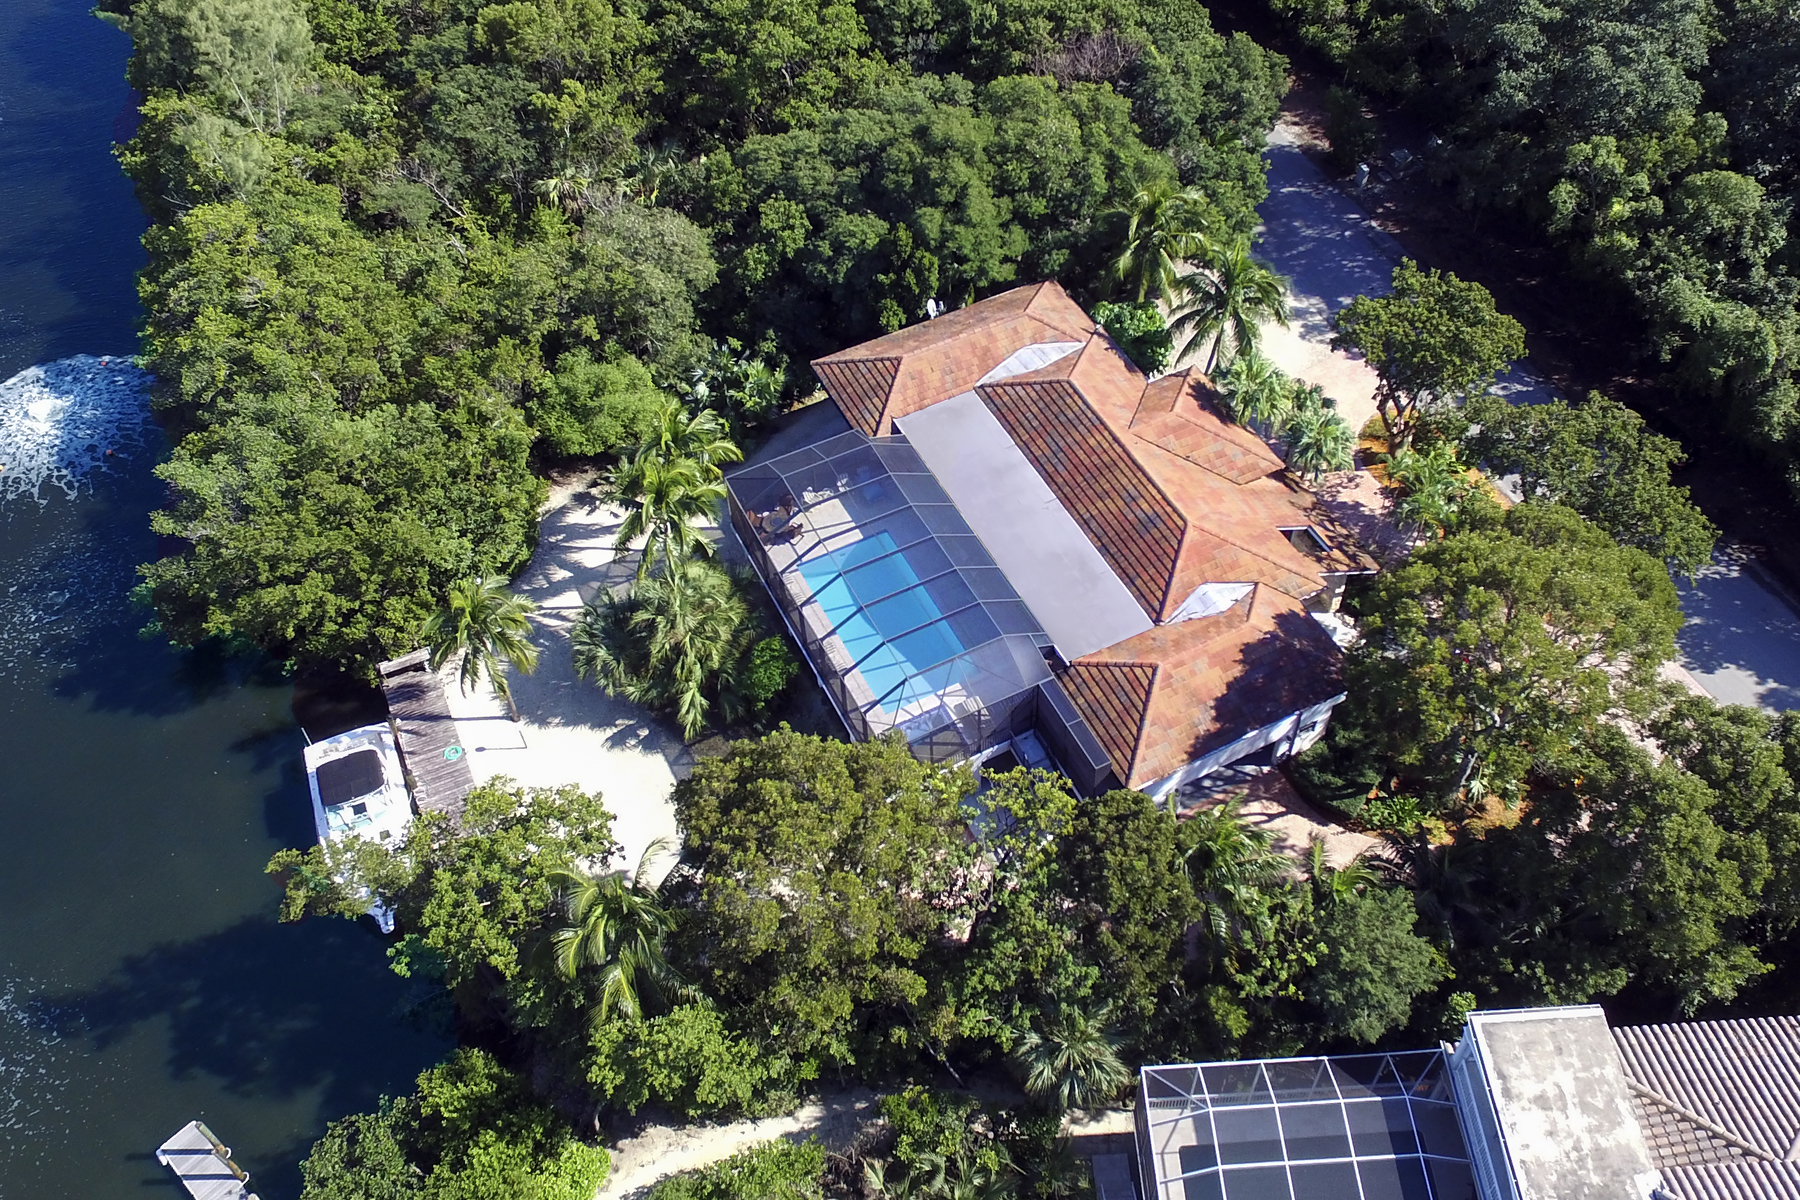 Property for Sale at 12 South Bridge Lane, Key Largo, FL 12 South Bridge Lane Key Largo, Florida 33037 United States